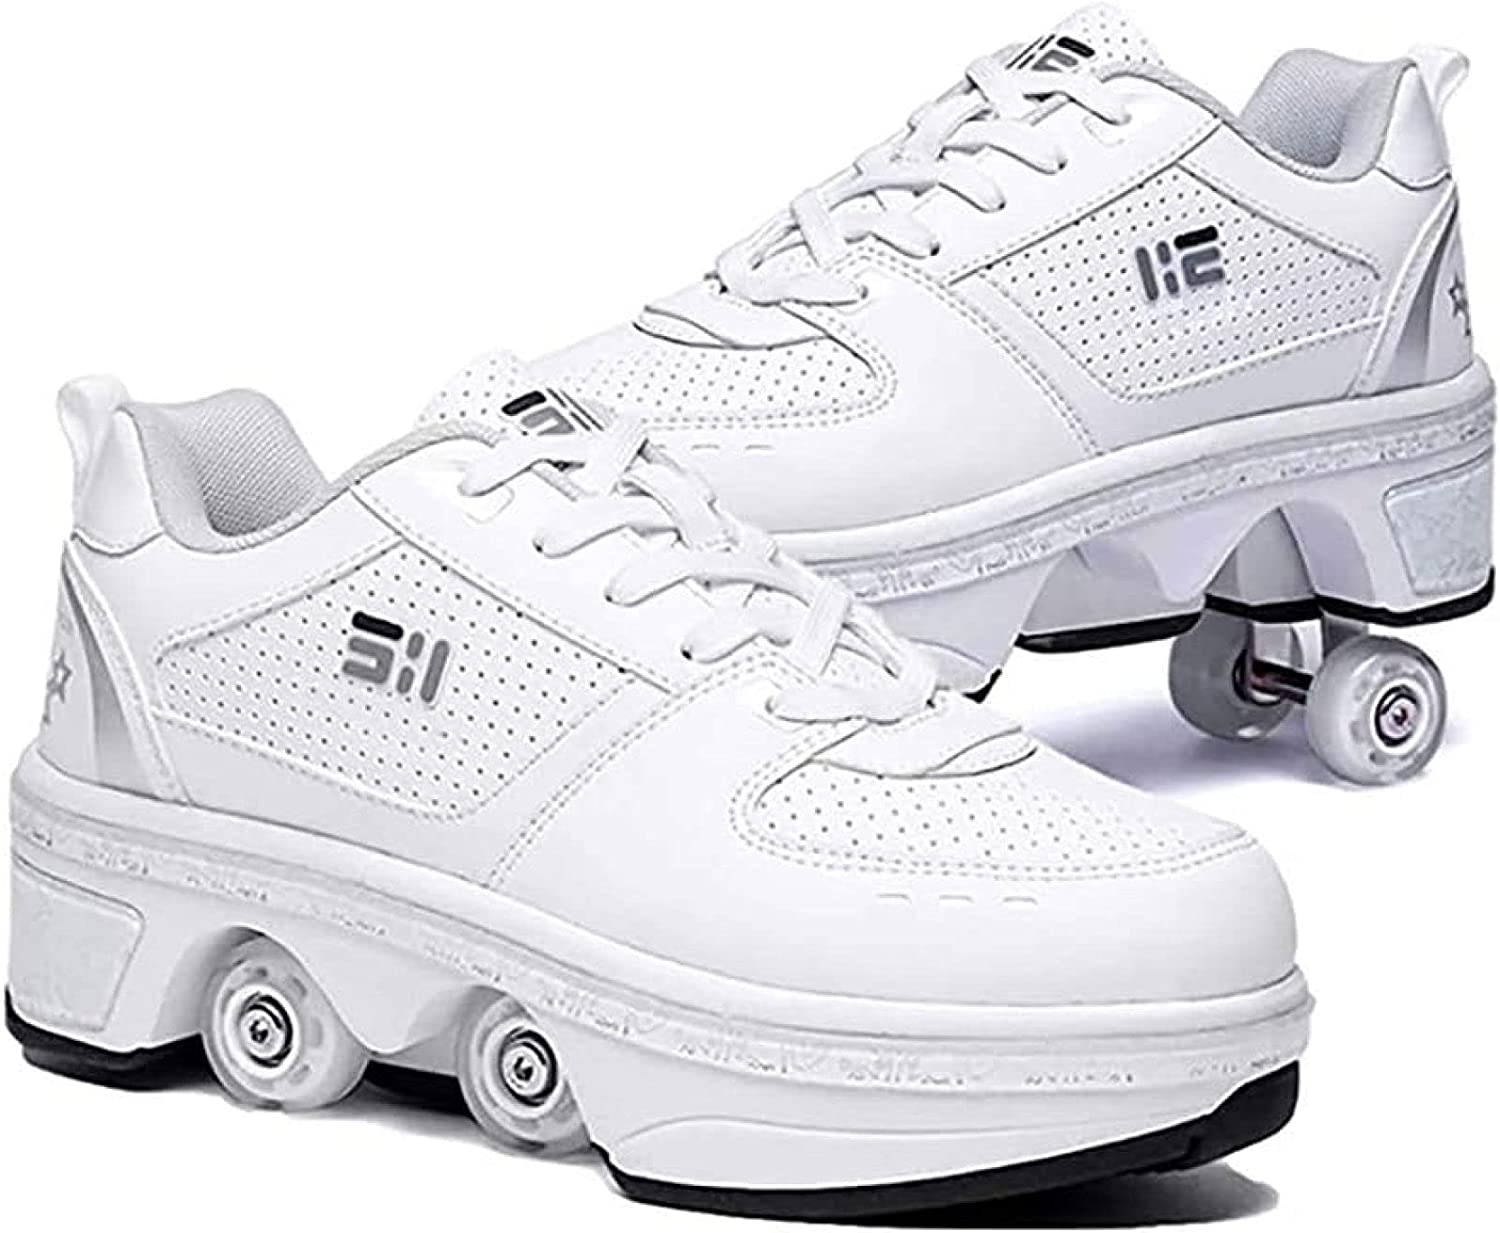 Mr. Hao Direct store 2 in 1 Roller Skates Directly managed store Walking Automatic Deformation Shoes